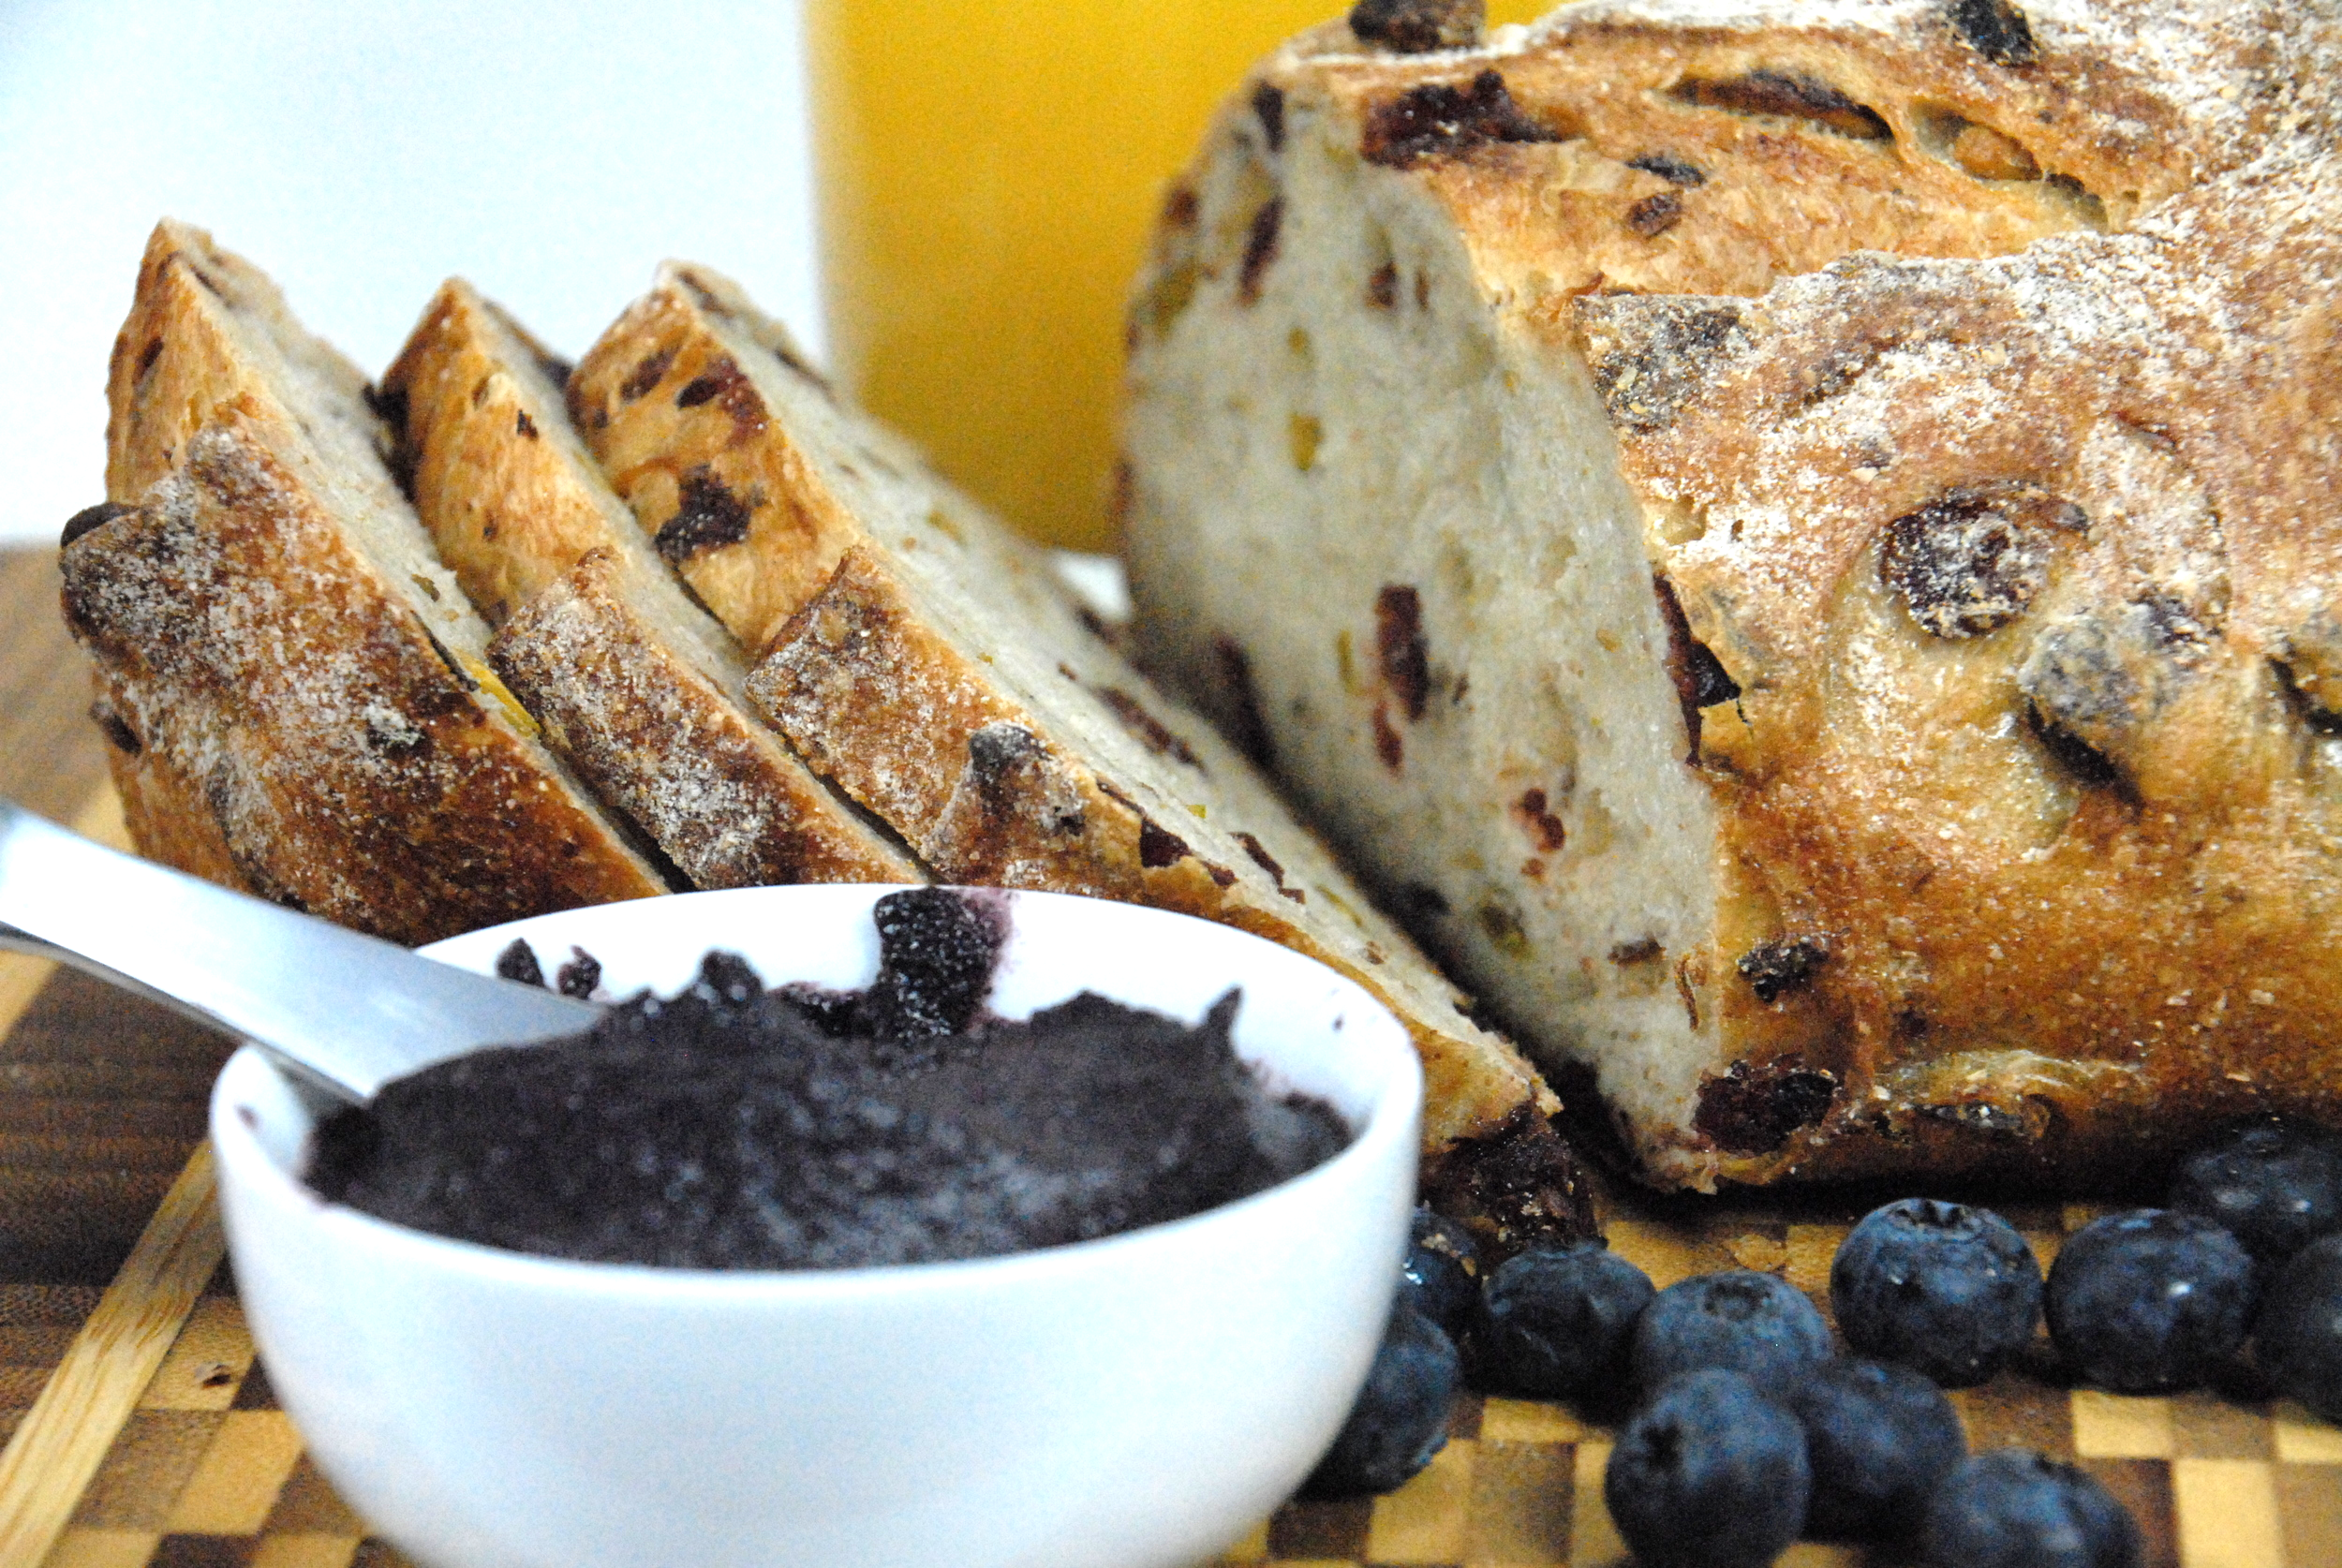 Artisanal bread with Forte chocolate fruit spread